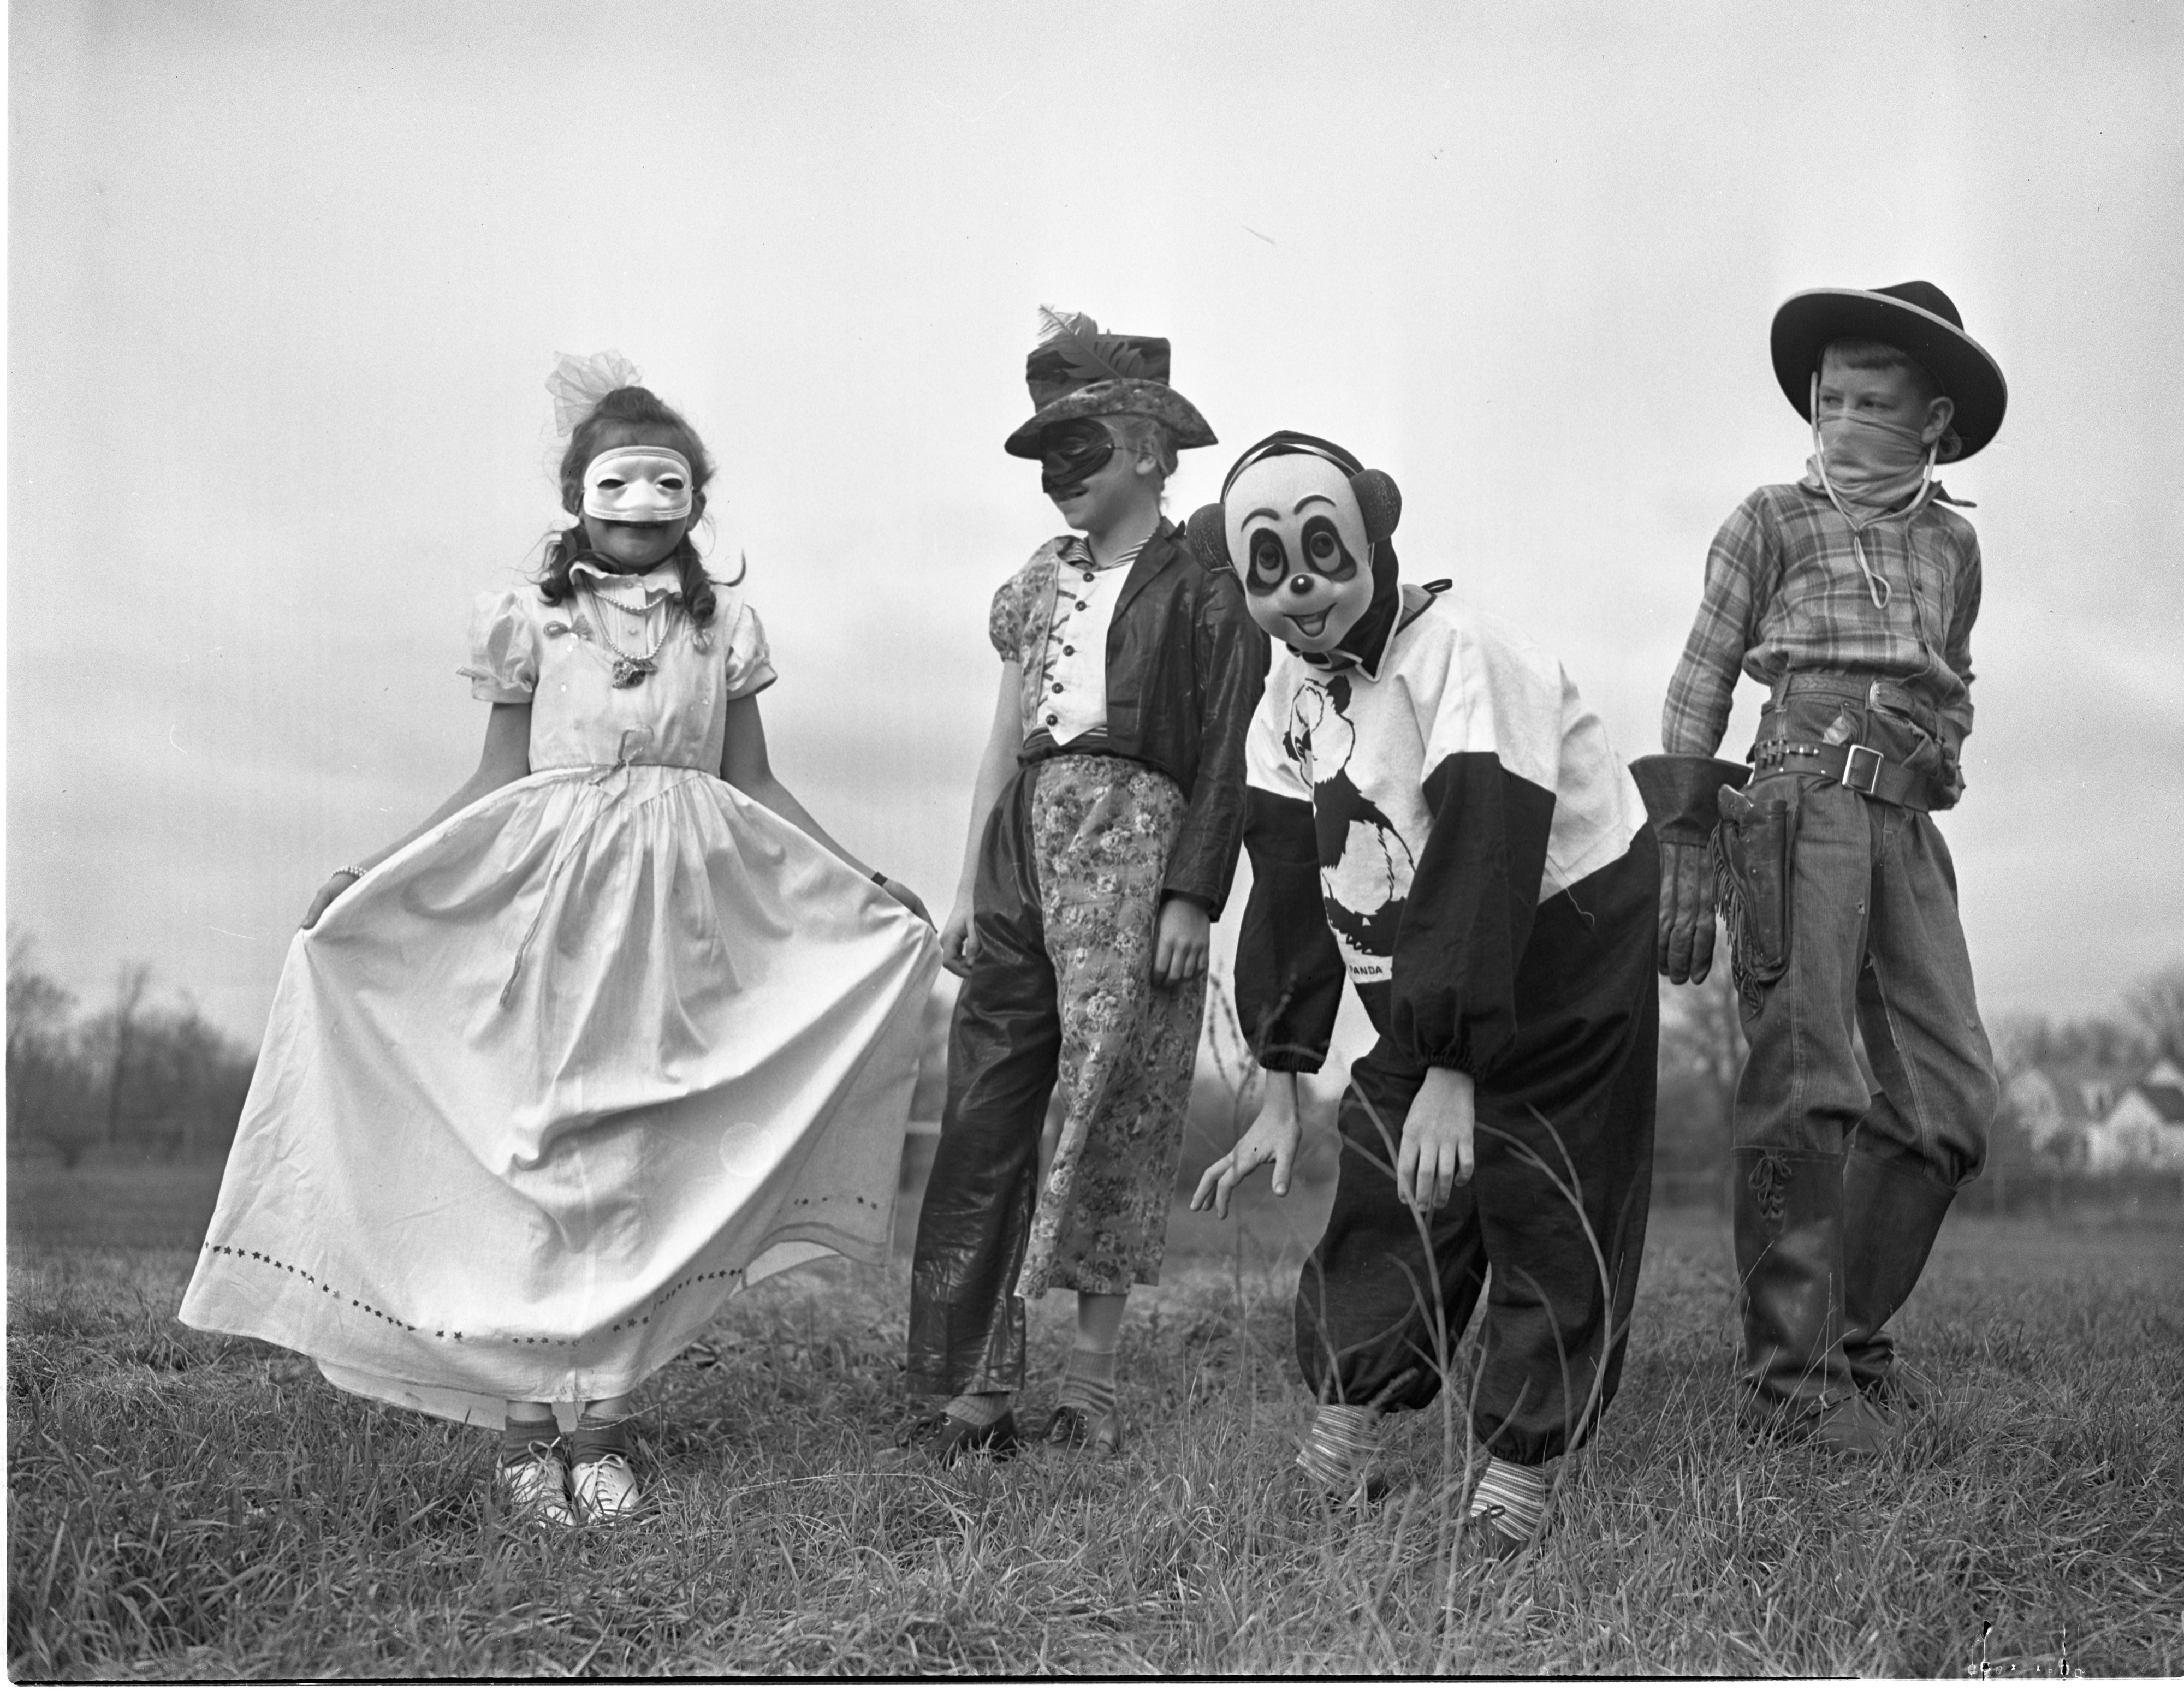 Mack School Students In Halloween Costumes For All-City Party, October 1941 image